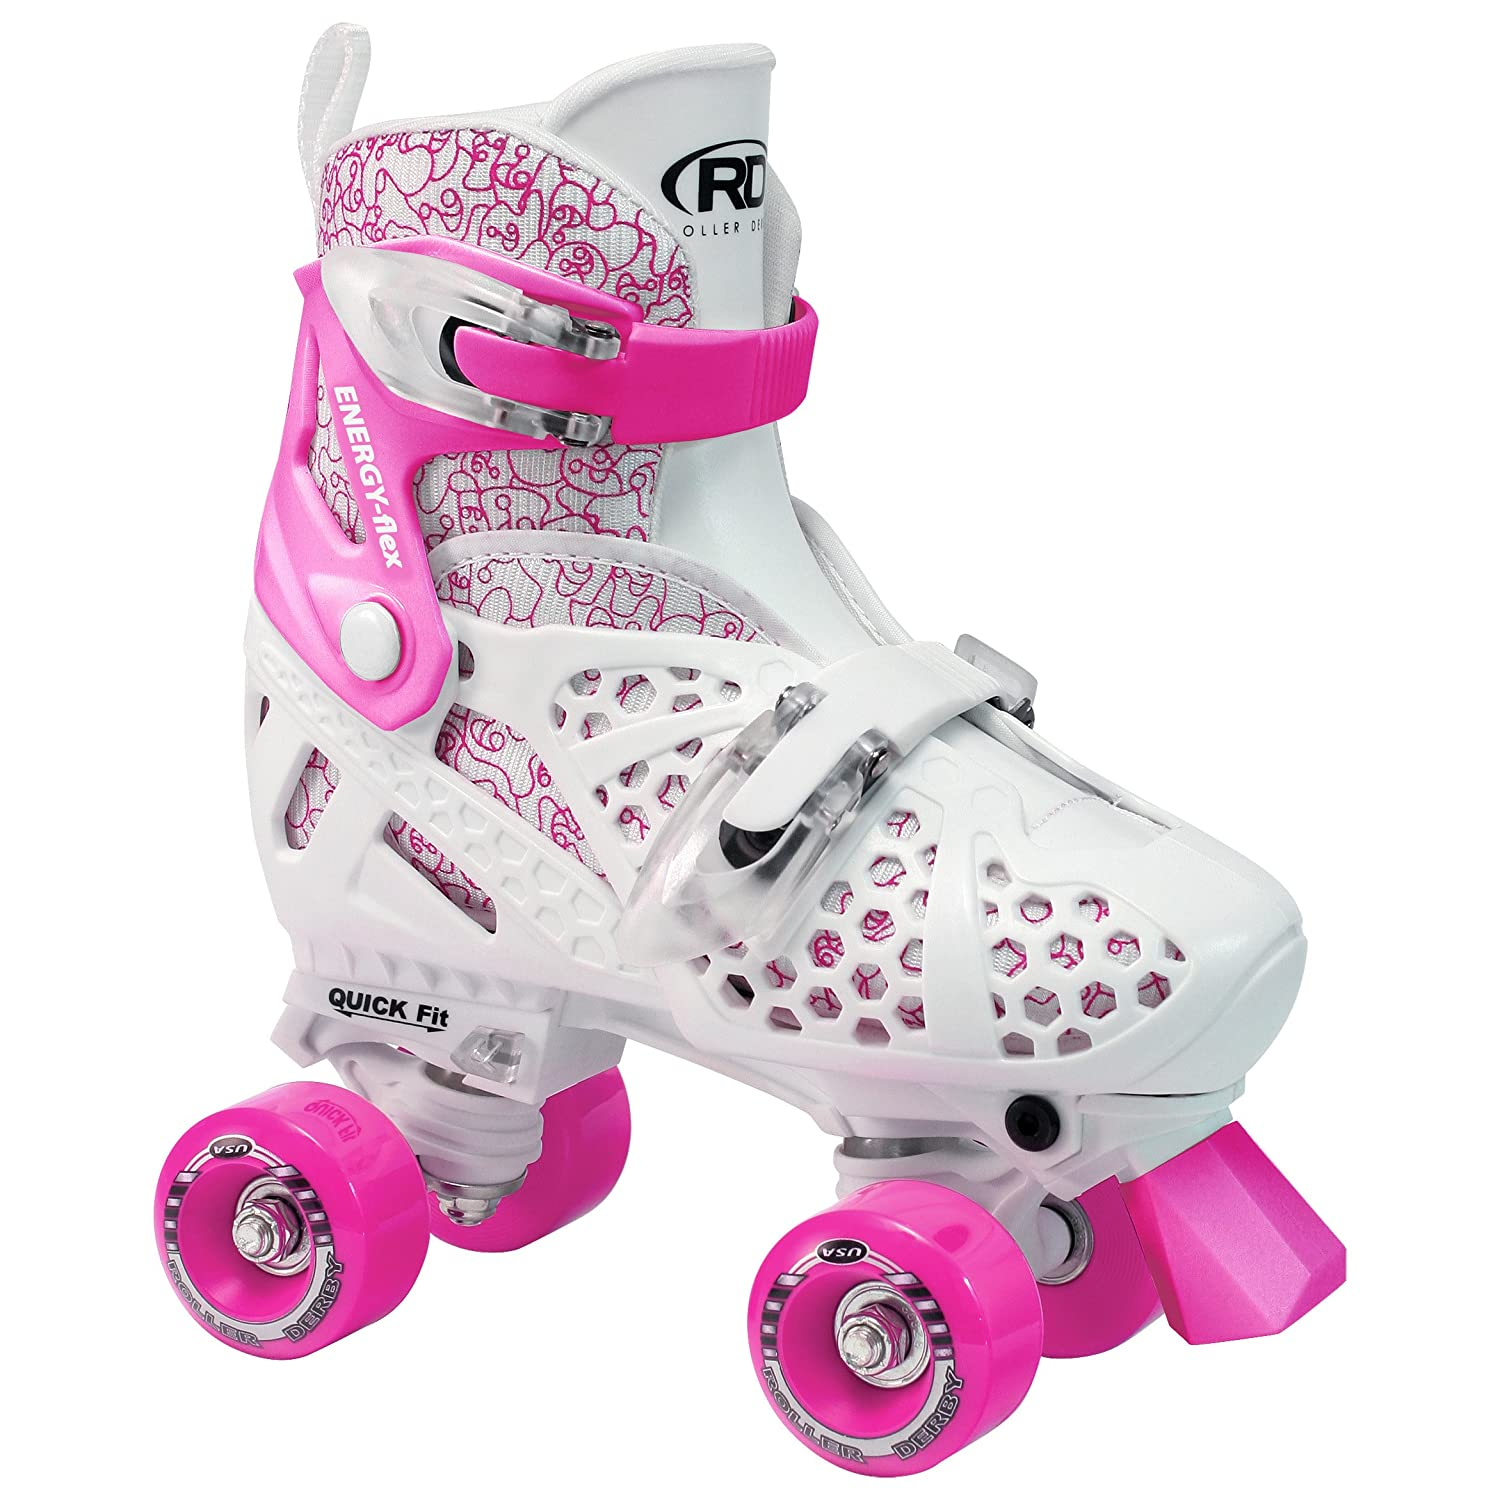 Roller Trac Start Girls Patines de ruedas para niño talla regulable